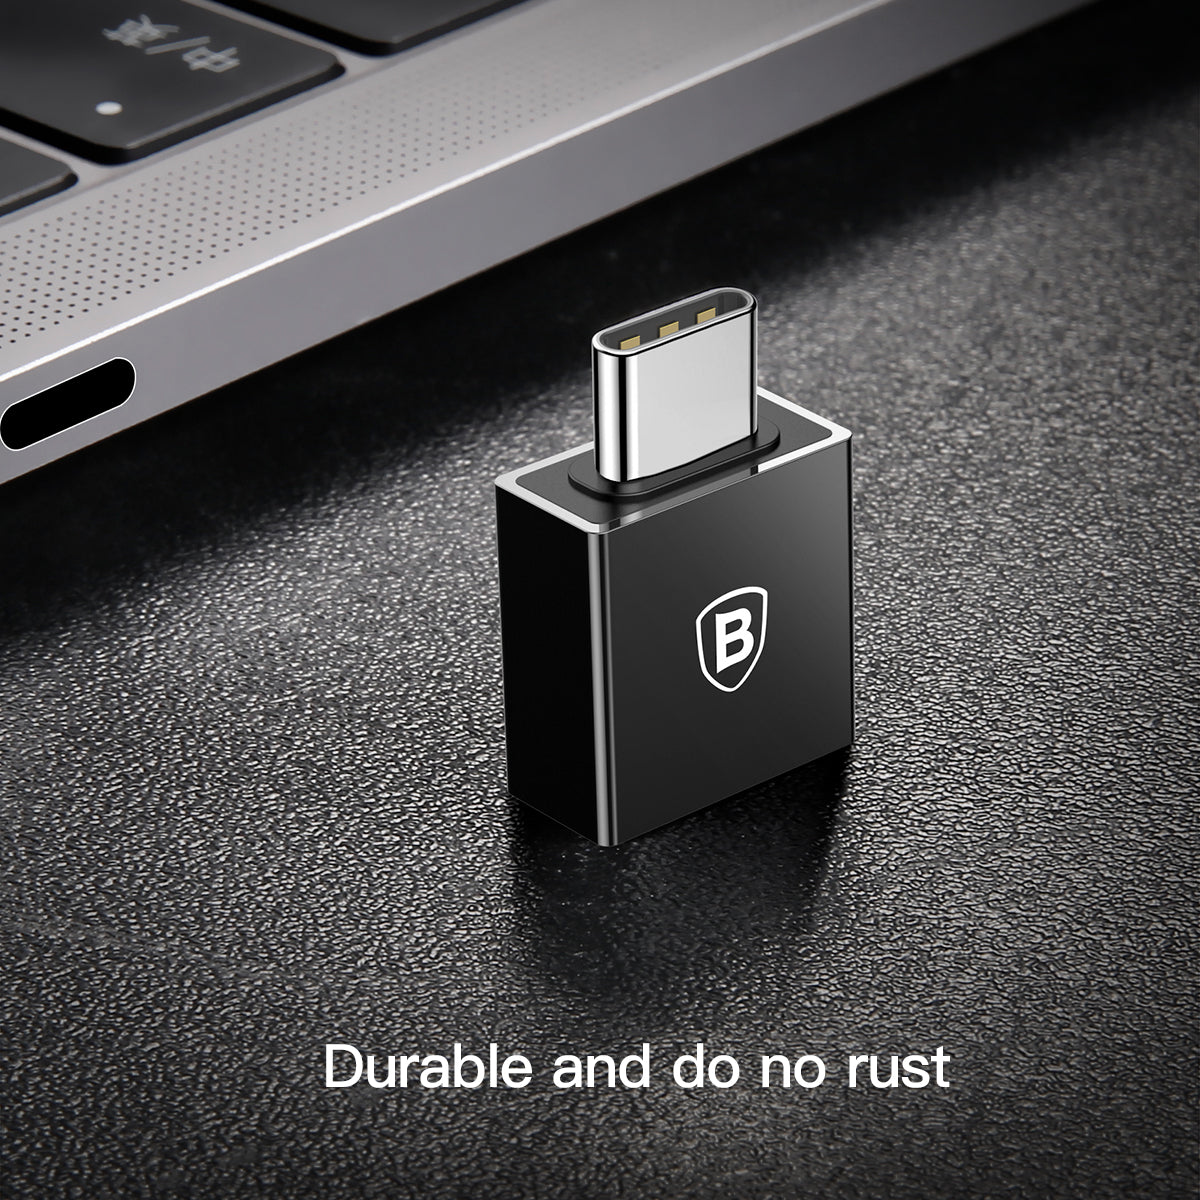 Baseus_Exquisite_Type_C_Male_to_USB_female_adapter_durable_SD9OZWPGB89H.jpg